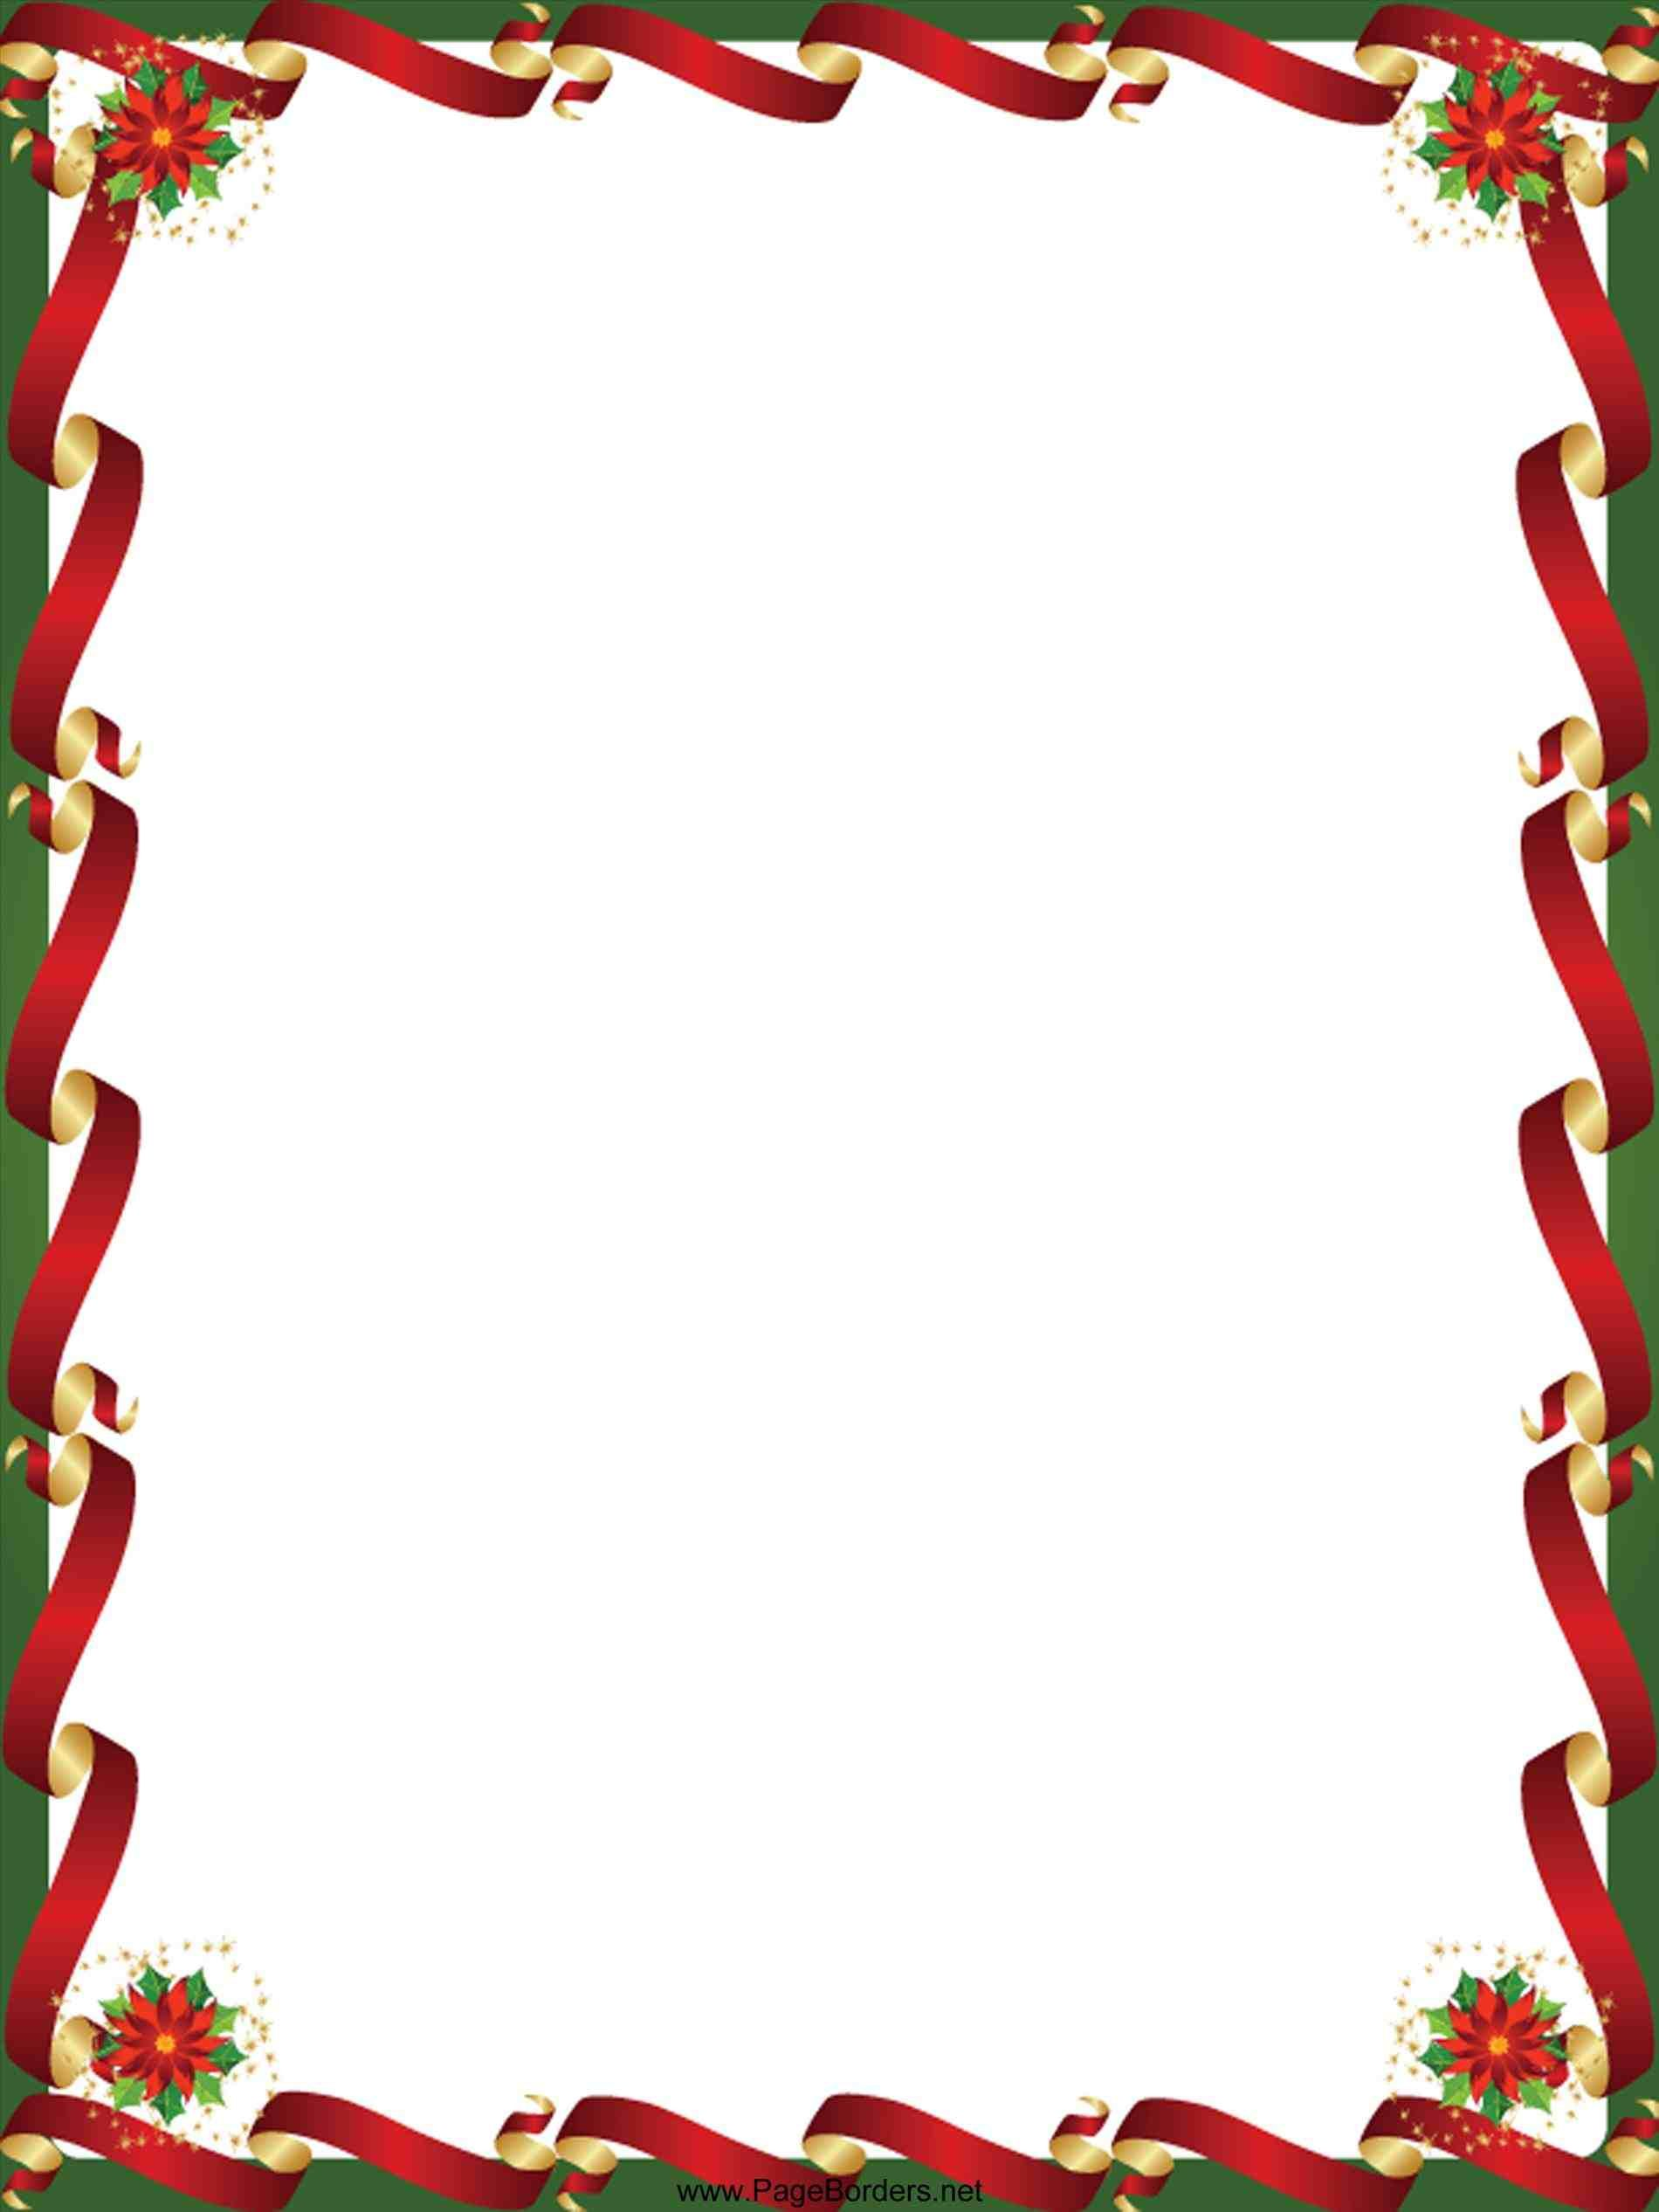 new free christmas border templates download at temasisteminet free christmas borders christmas boarders